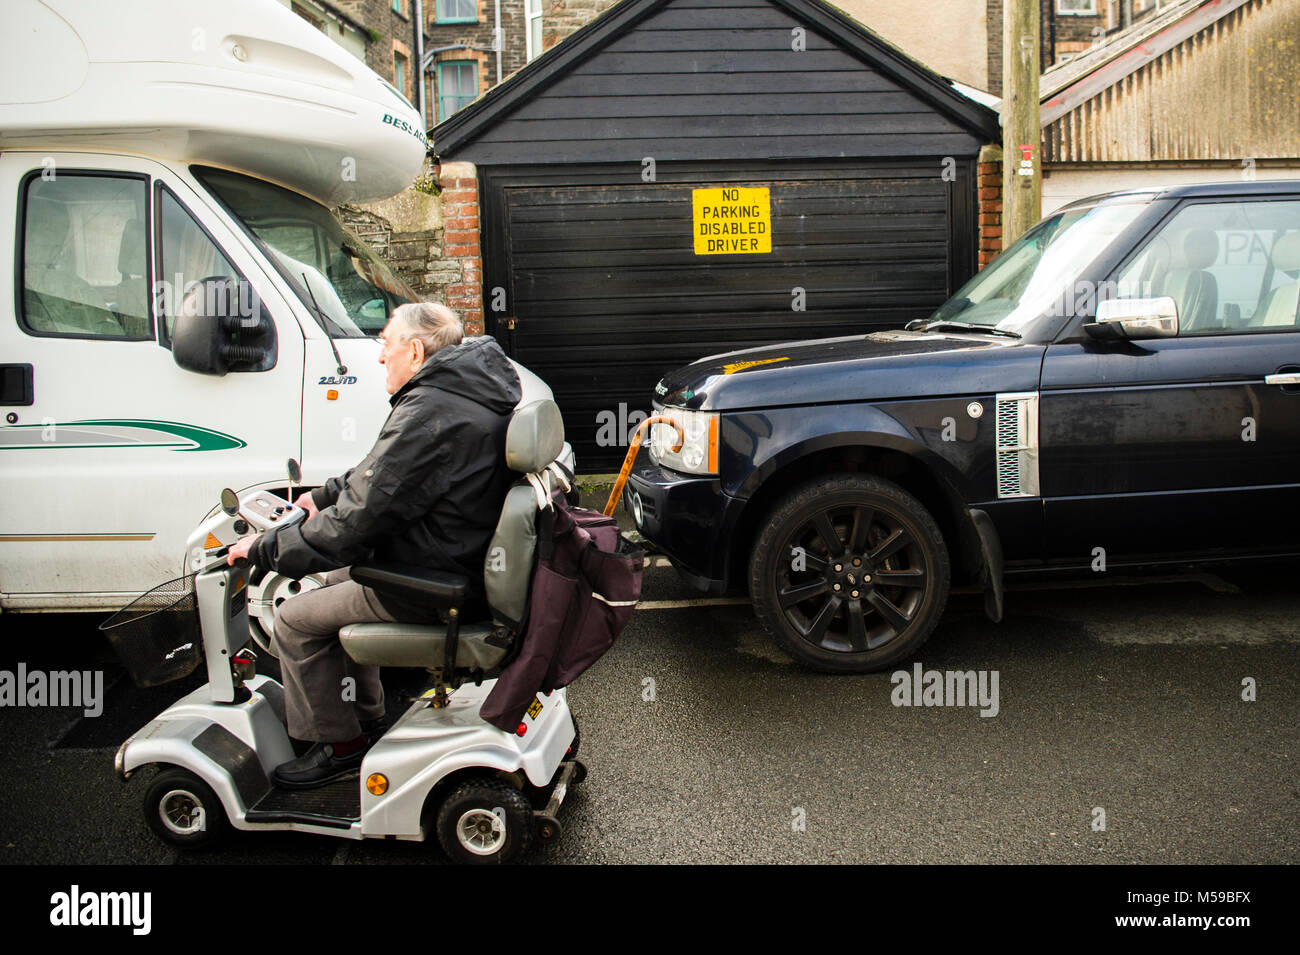 Inconsiderate motorists UK: A man riding on a disability scooter passing two parked vehicles blocking the entrance - Stock Image